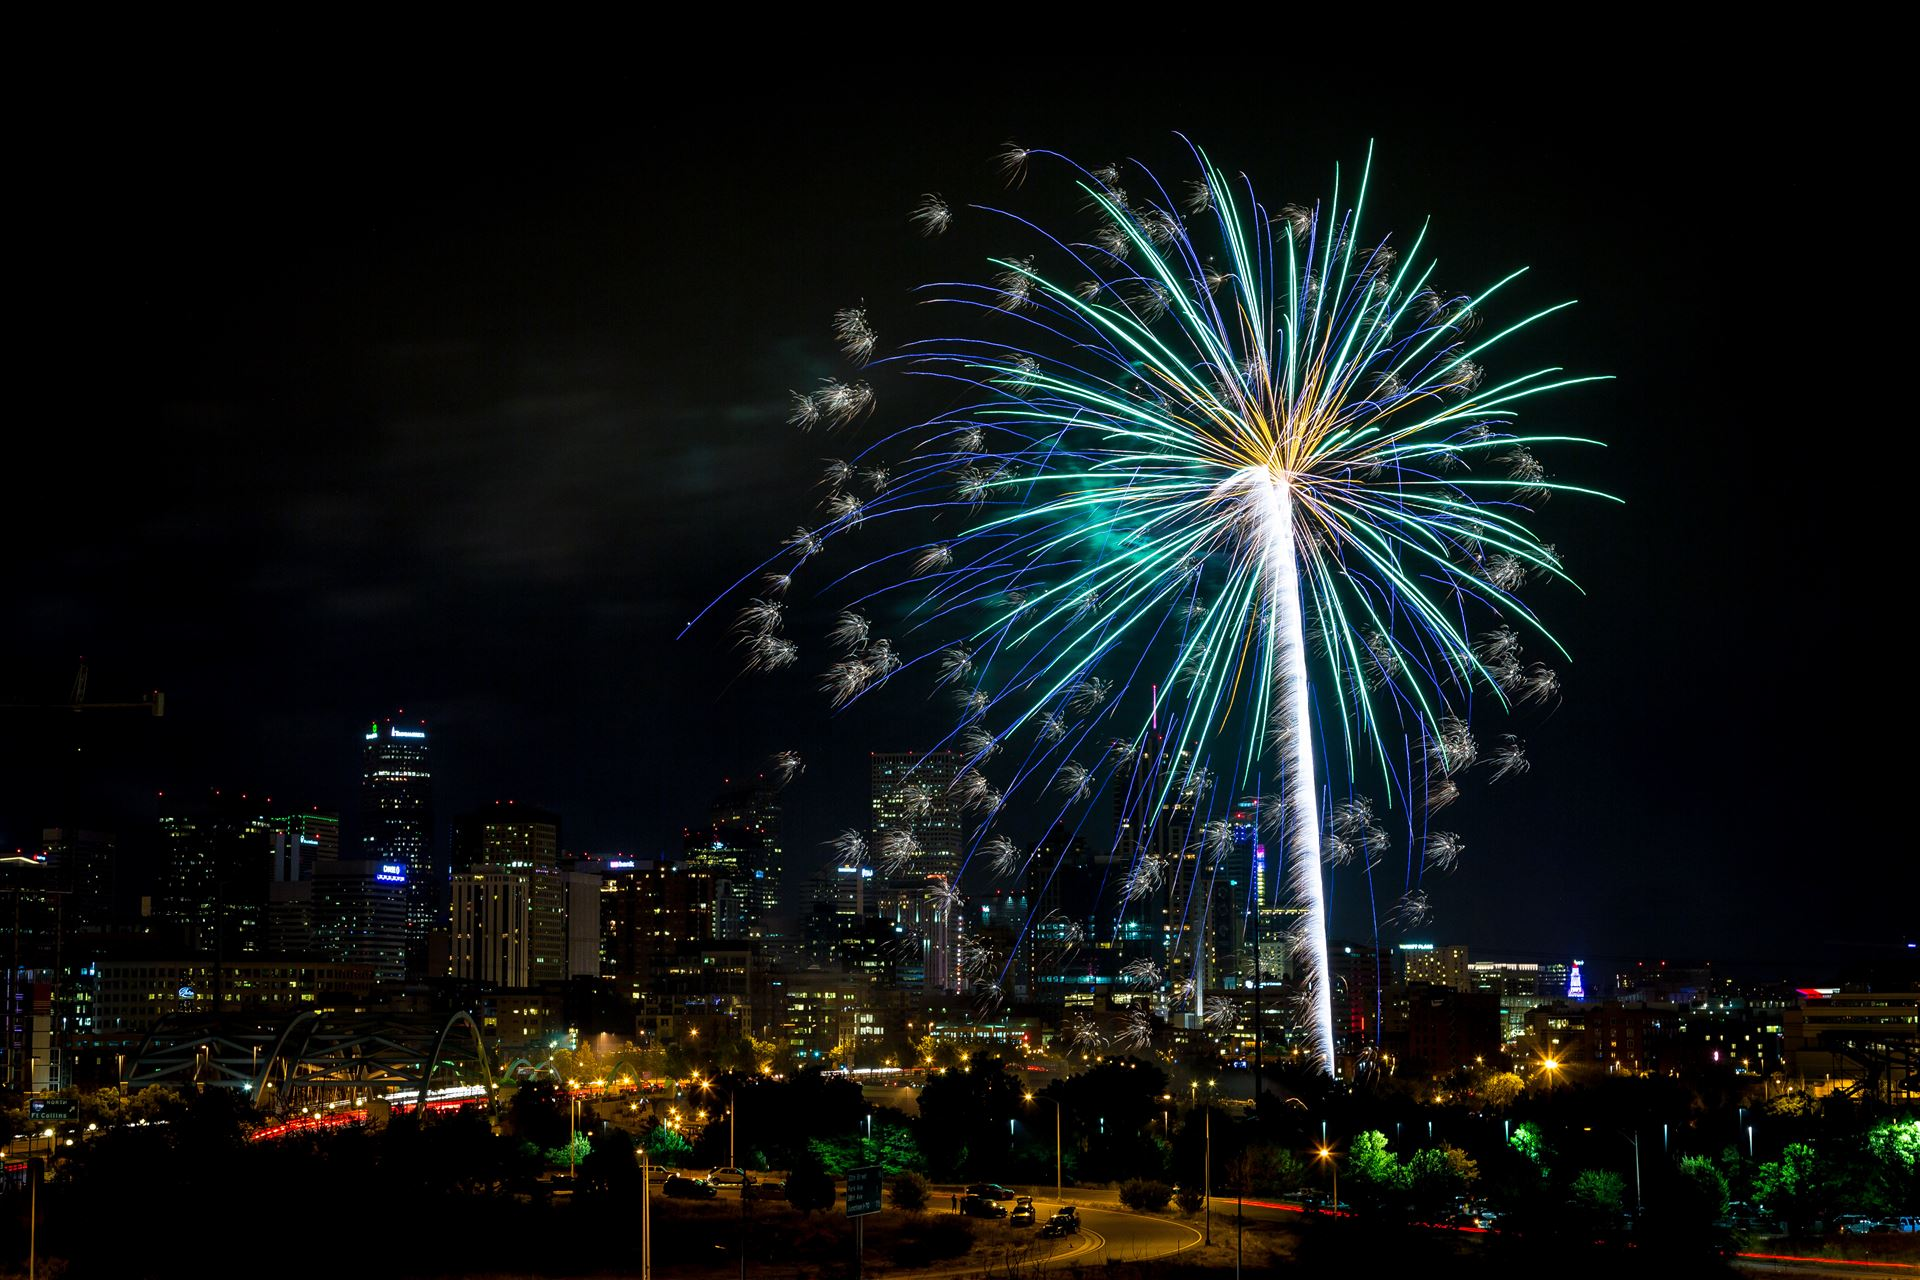 Elitch's Fireworks 2016 - 11 - Fireworks from Elitch Gardens, taken near Speer and Zuni in Denver, Colorado. by D Scott Smith